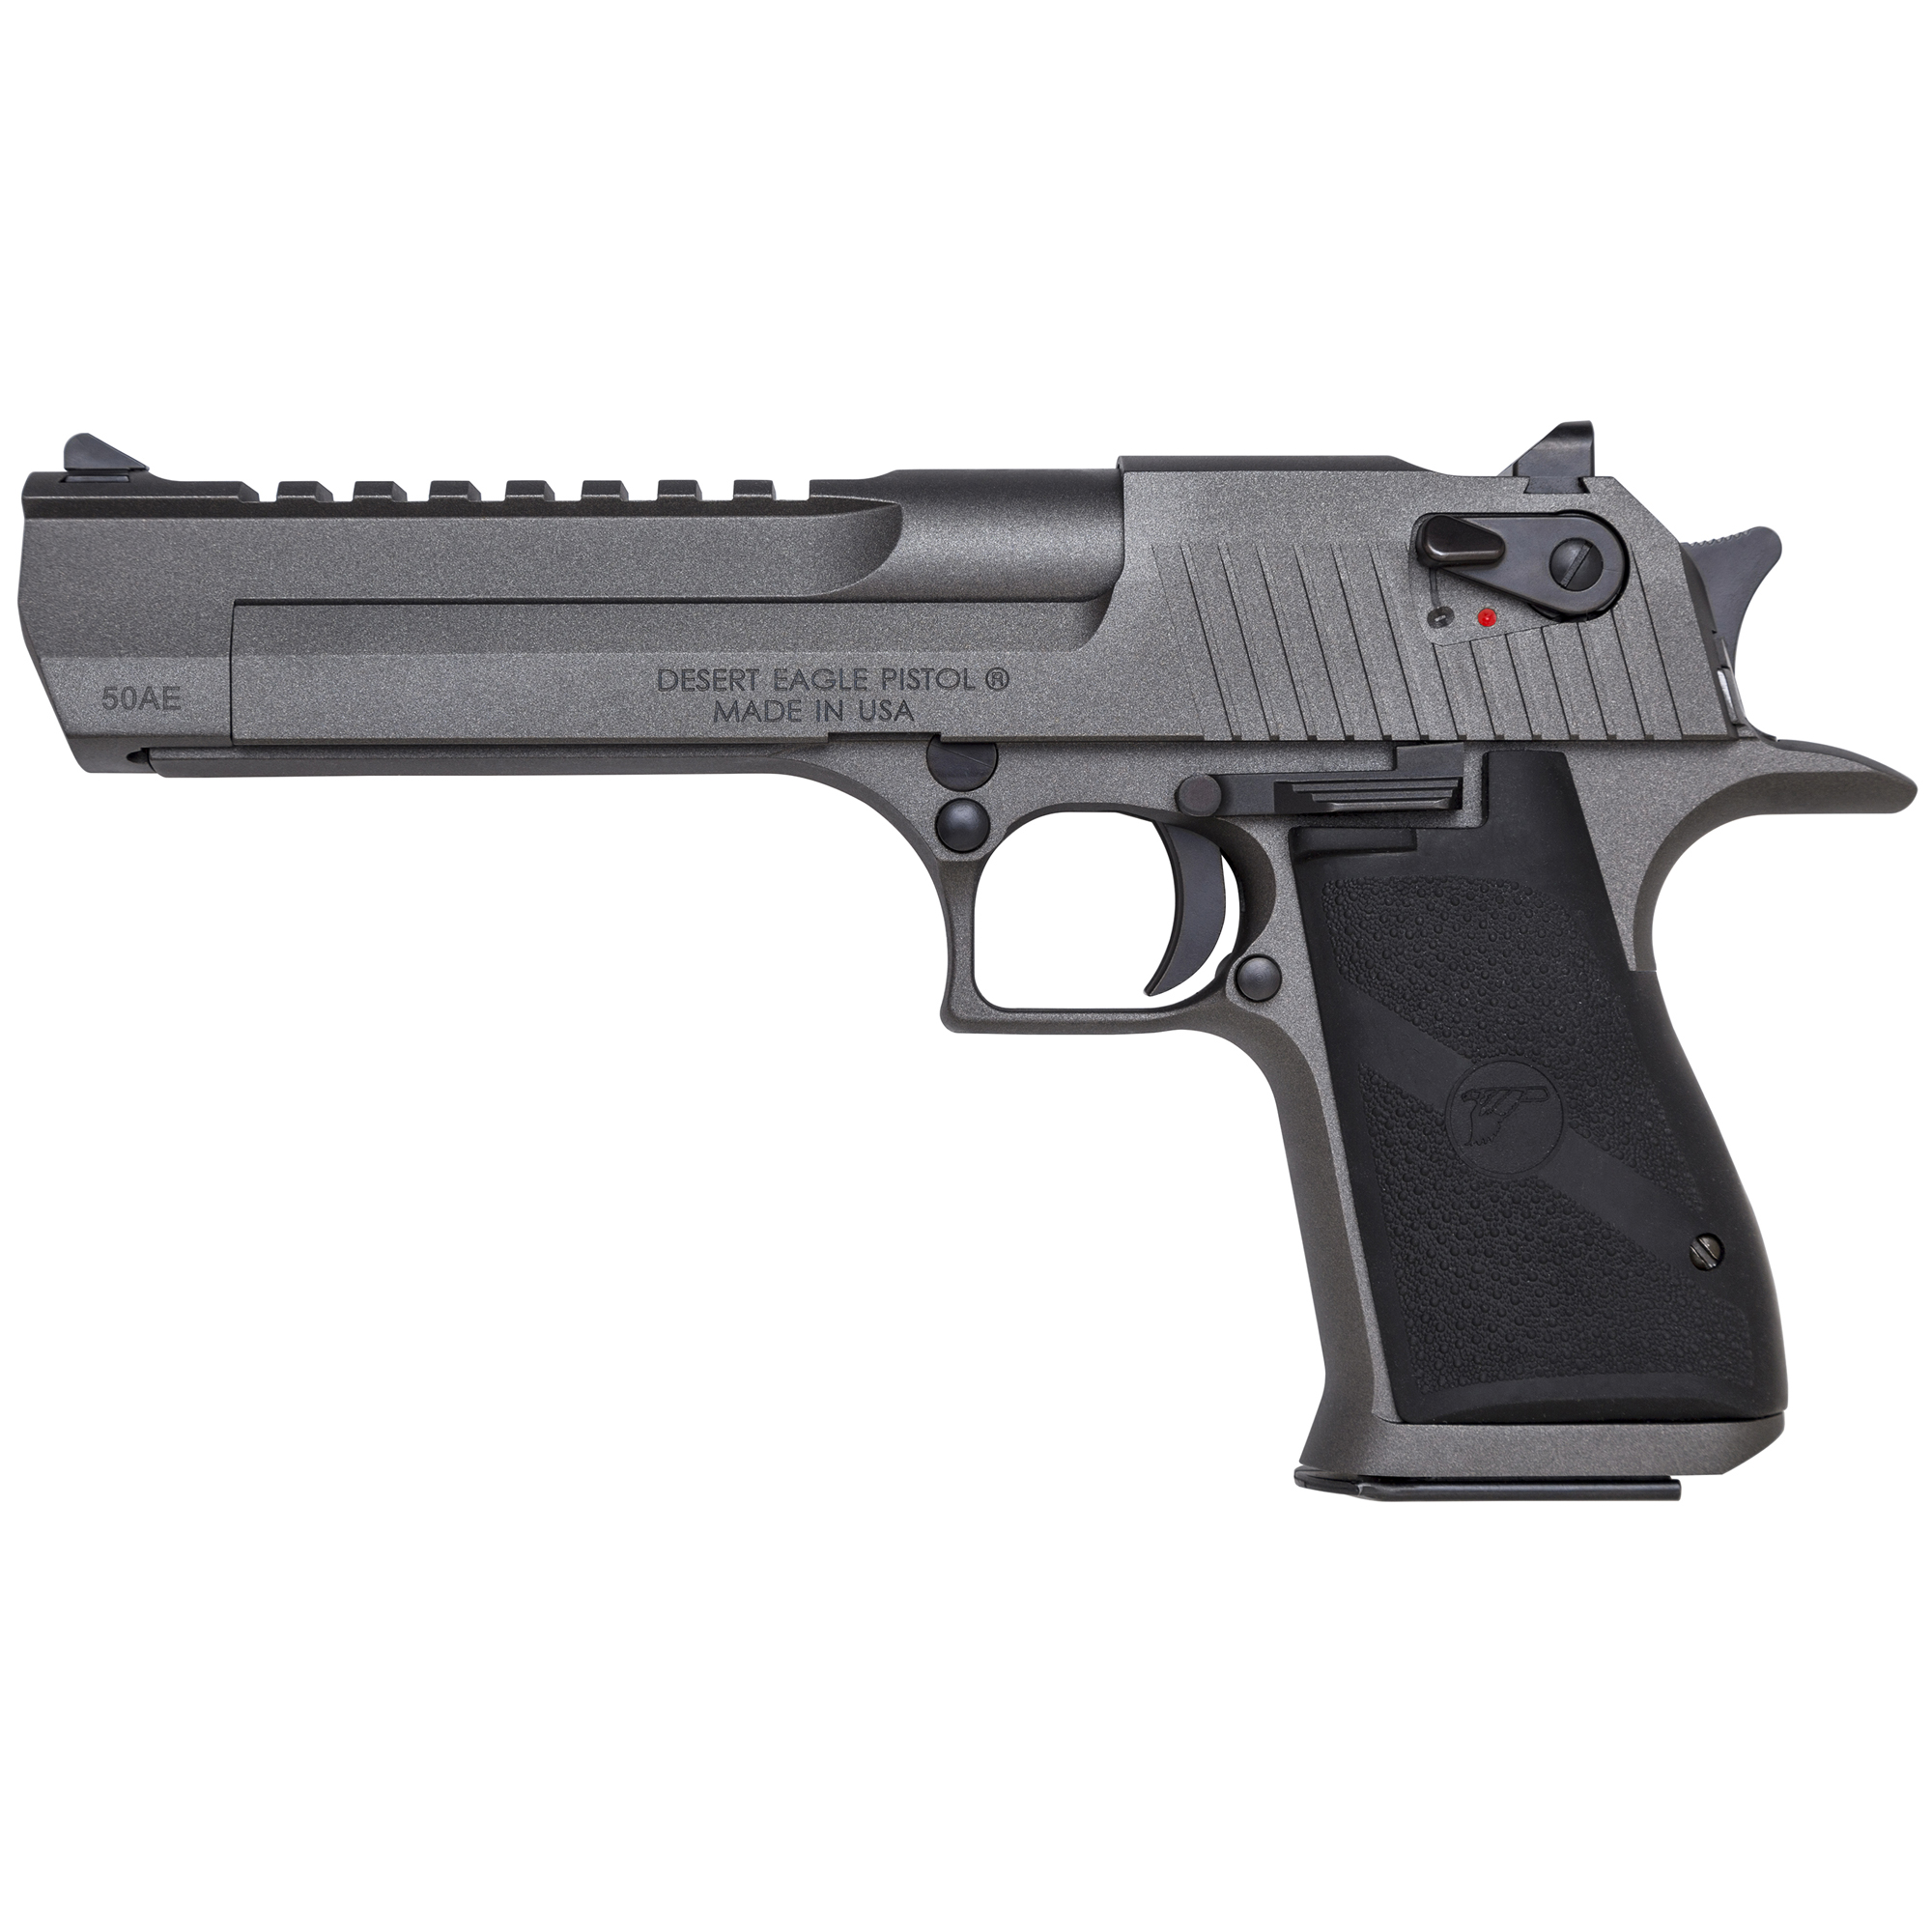 """The Mark XIX Desert Eagle Tungsten pistol is a gas-operated"""" semi-automatic pistol with a 7-round capacity in .50AE and an 8-round capacity in .44 Magnum. The gun measures 10.75"""" in length and has a 6"""" barrel. Width is 1.25"""""""" height is 6.25"""" and the weight with an empty magazine is approx. 72 ounces. It has a trigger reach of 2.75"""" and a sight radius of 8.5"""" with the 6"""" barrel. The construction of the Mark XIX Desert Eagle pistol utilizes the latest CNC machine technology providing exacting specifications with tight tolerances creating a work of art in a precision firearm. The grip is anatomically formed and provides an ideal hand seating angle for two-handed shooting"""" allowing for comfortable"""" rapid and accurate firing. The Weaver style accessory rail easily allows for aftermarket optics and scope rings. Includes one 7-round magazine."""